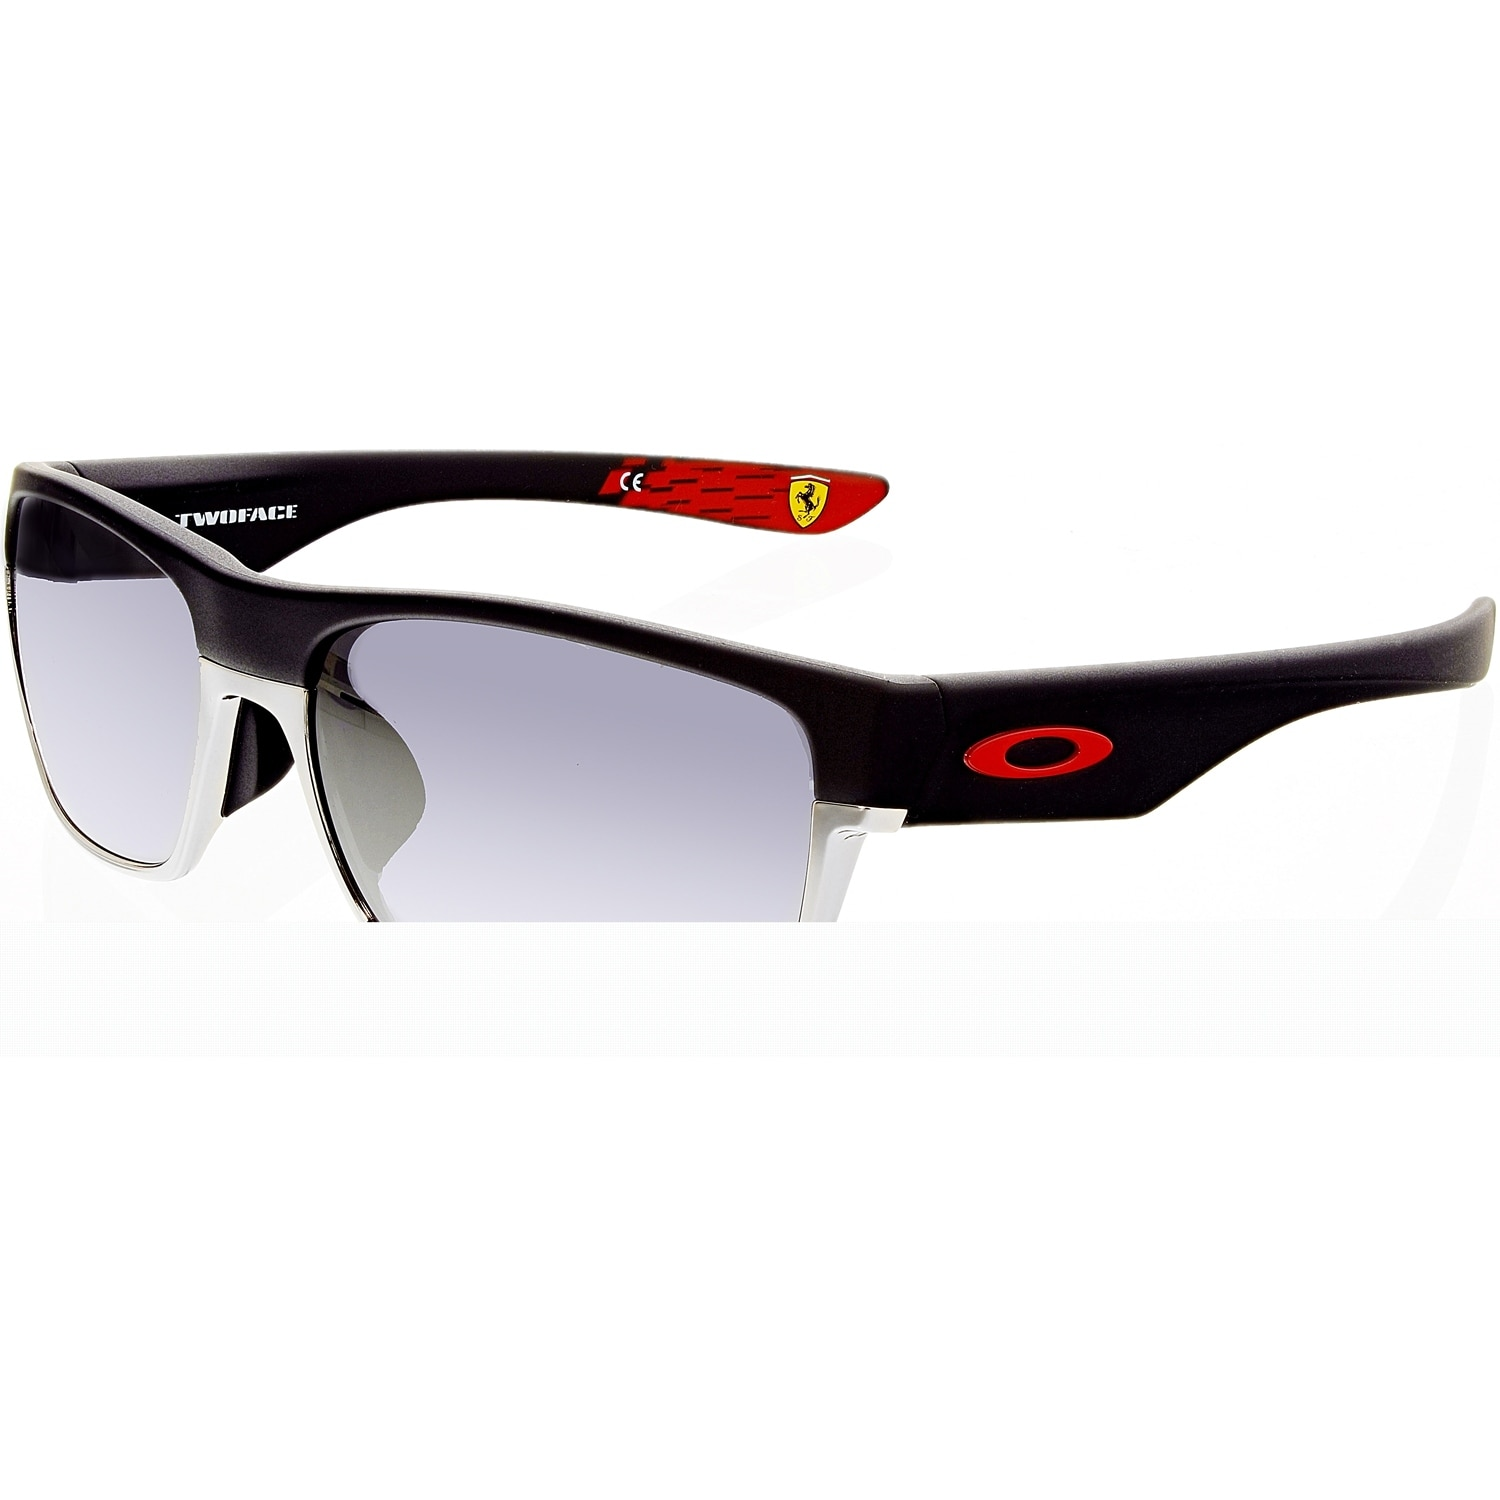 cf814613f6 Shop Oakley Men s Two Face OO9256-08 Black Rectangle Sunglasses ...